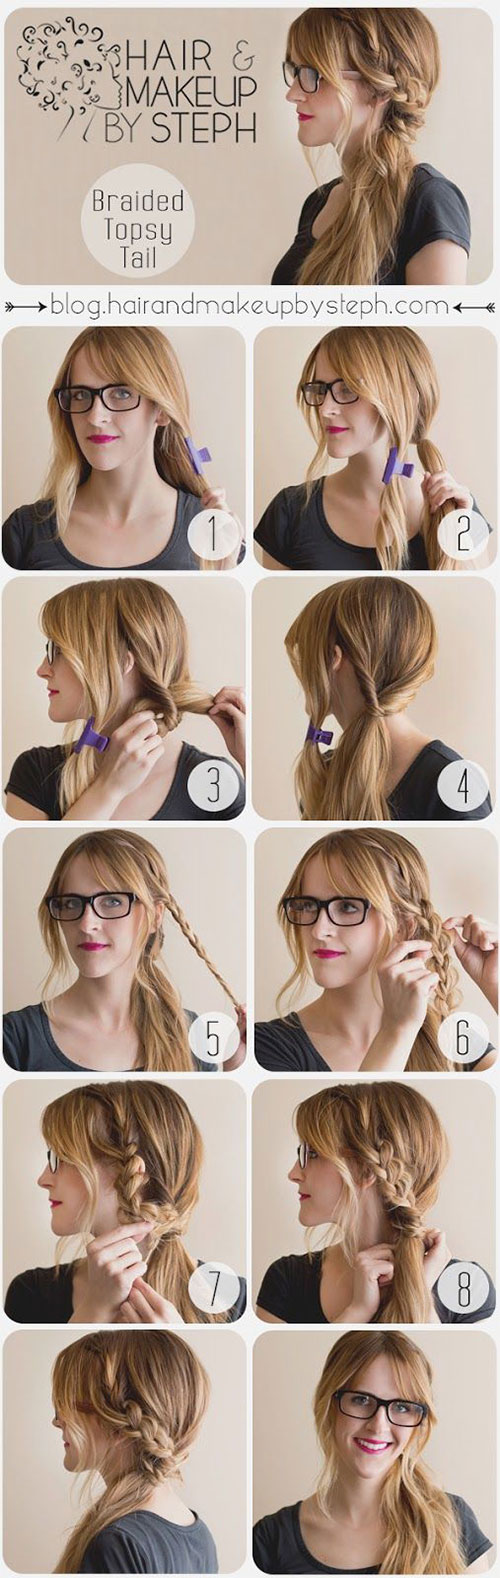 20-Easy-Step-By-Step-Summer-Braids-Style-Tutorials-For-Beginners-2015-9